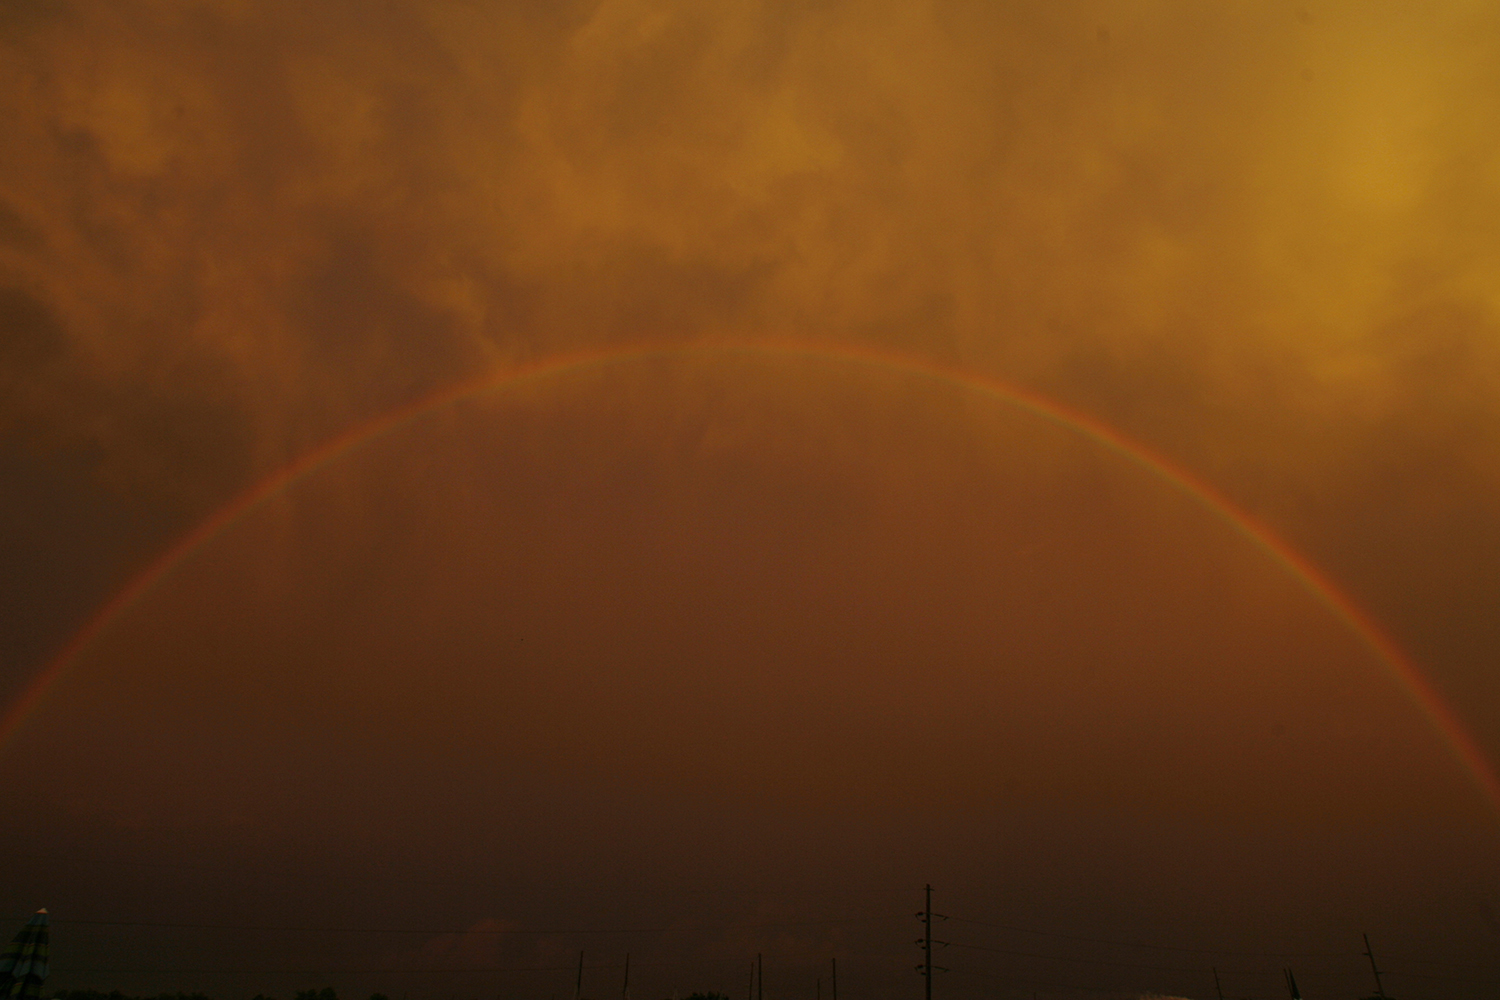 A full rainbow appears in the sky above east Springfield after a rain shower Tuesday, July 10, 2007. Ted Schurter/The State Journal-Register